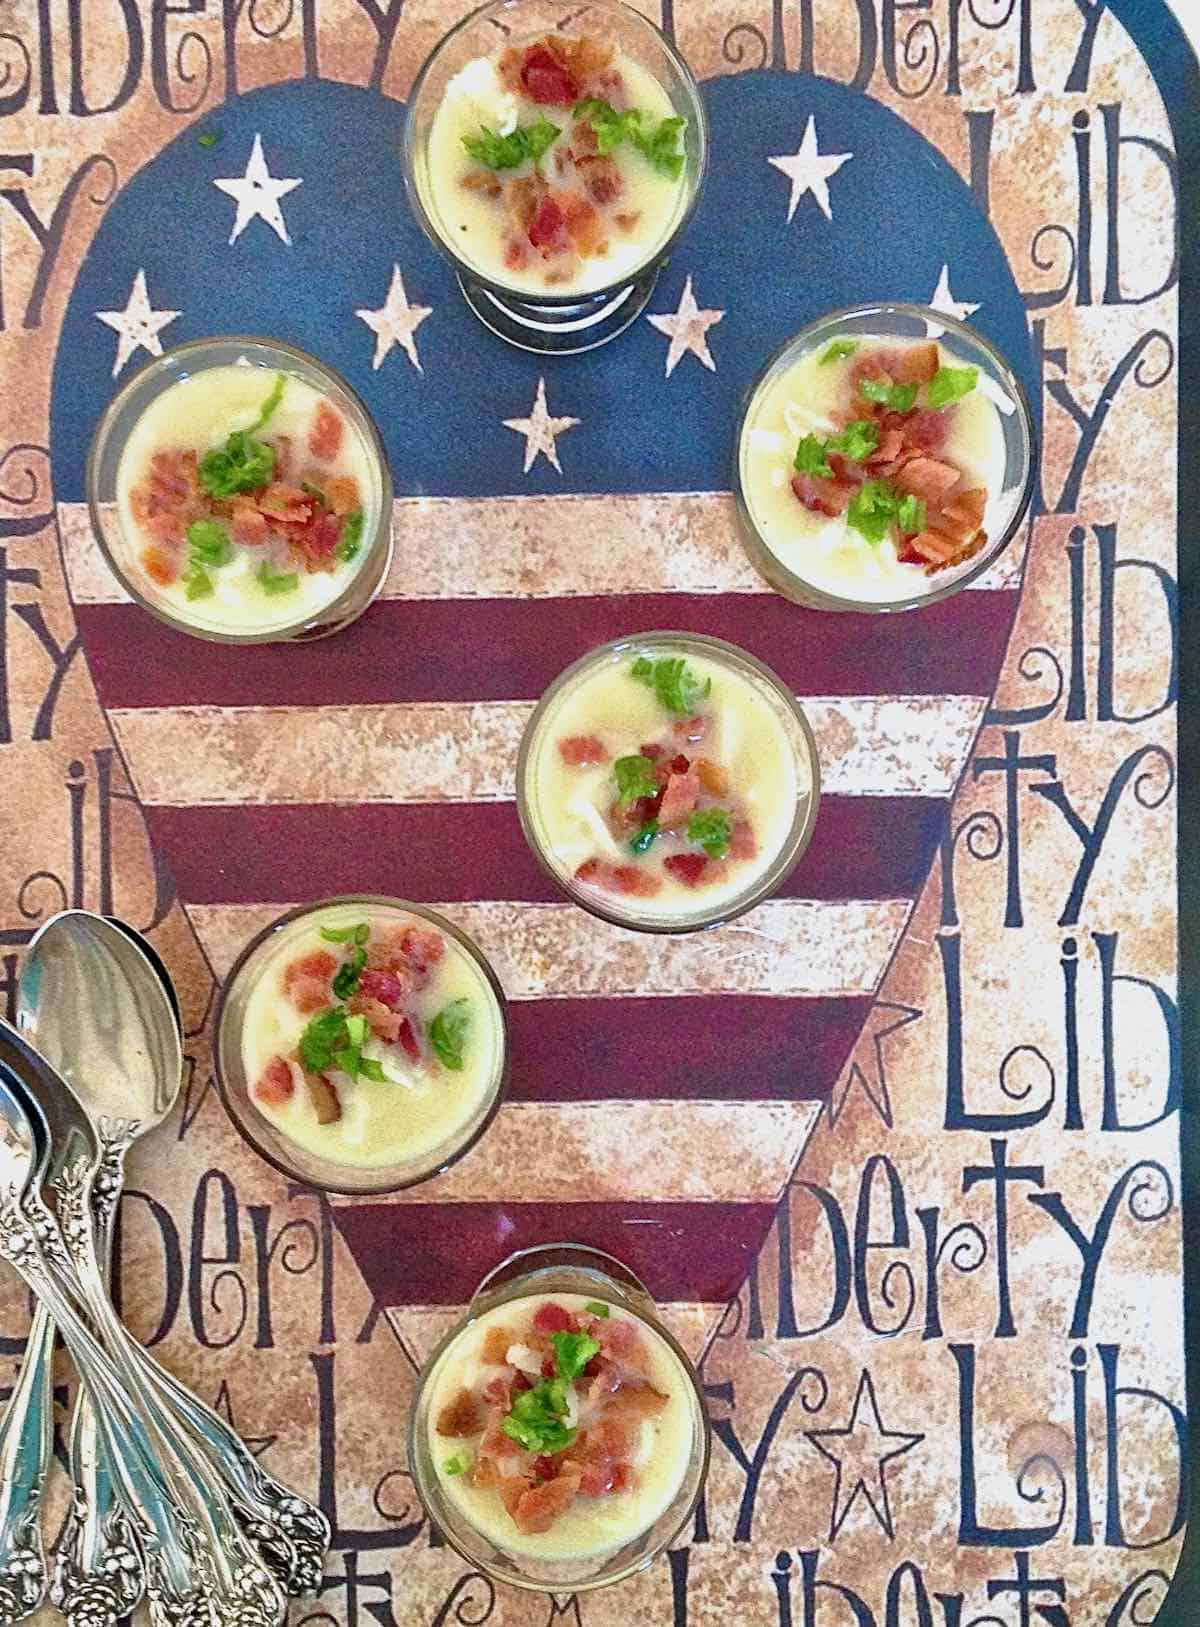 liberty allows you to garnish these Potato Leek Shooters any way your heart desires